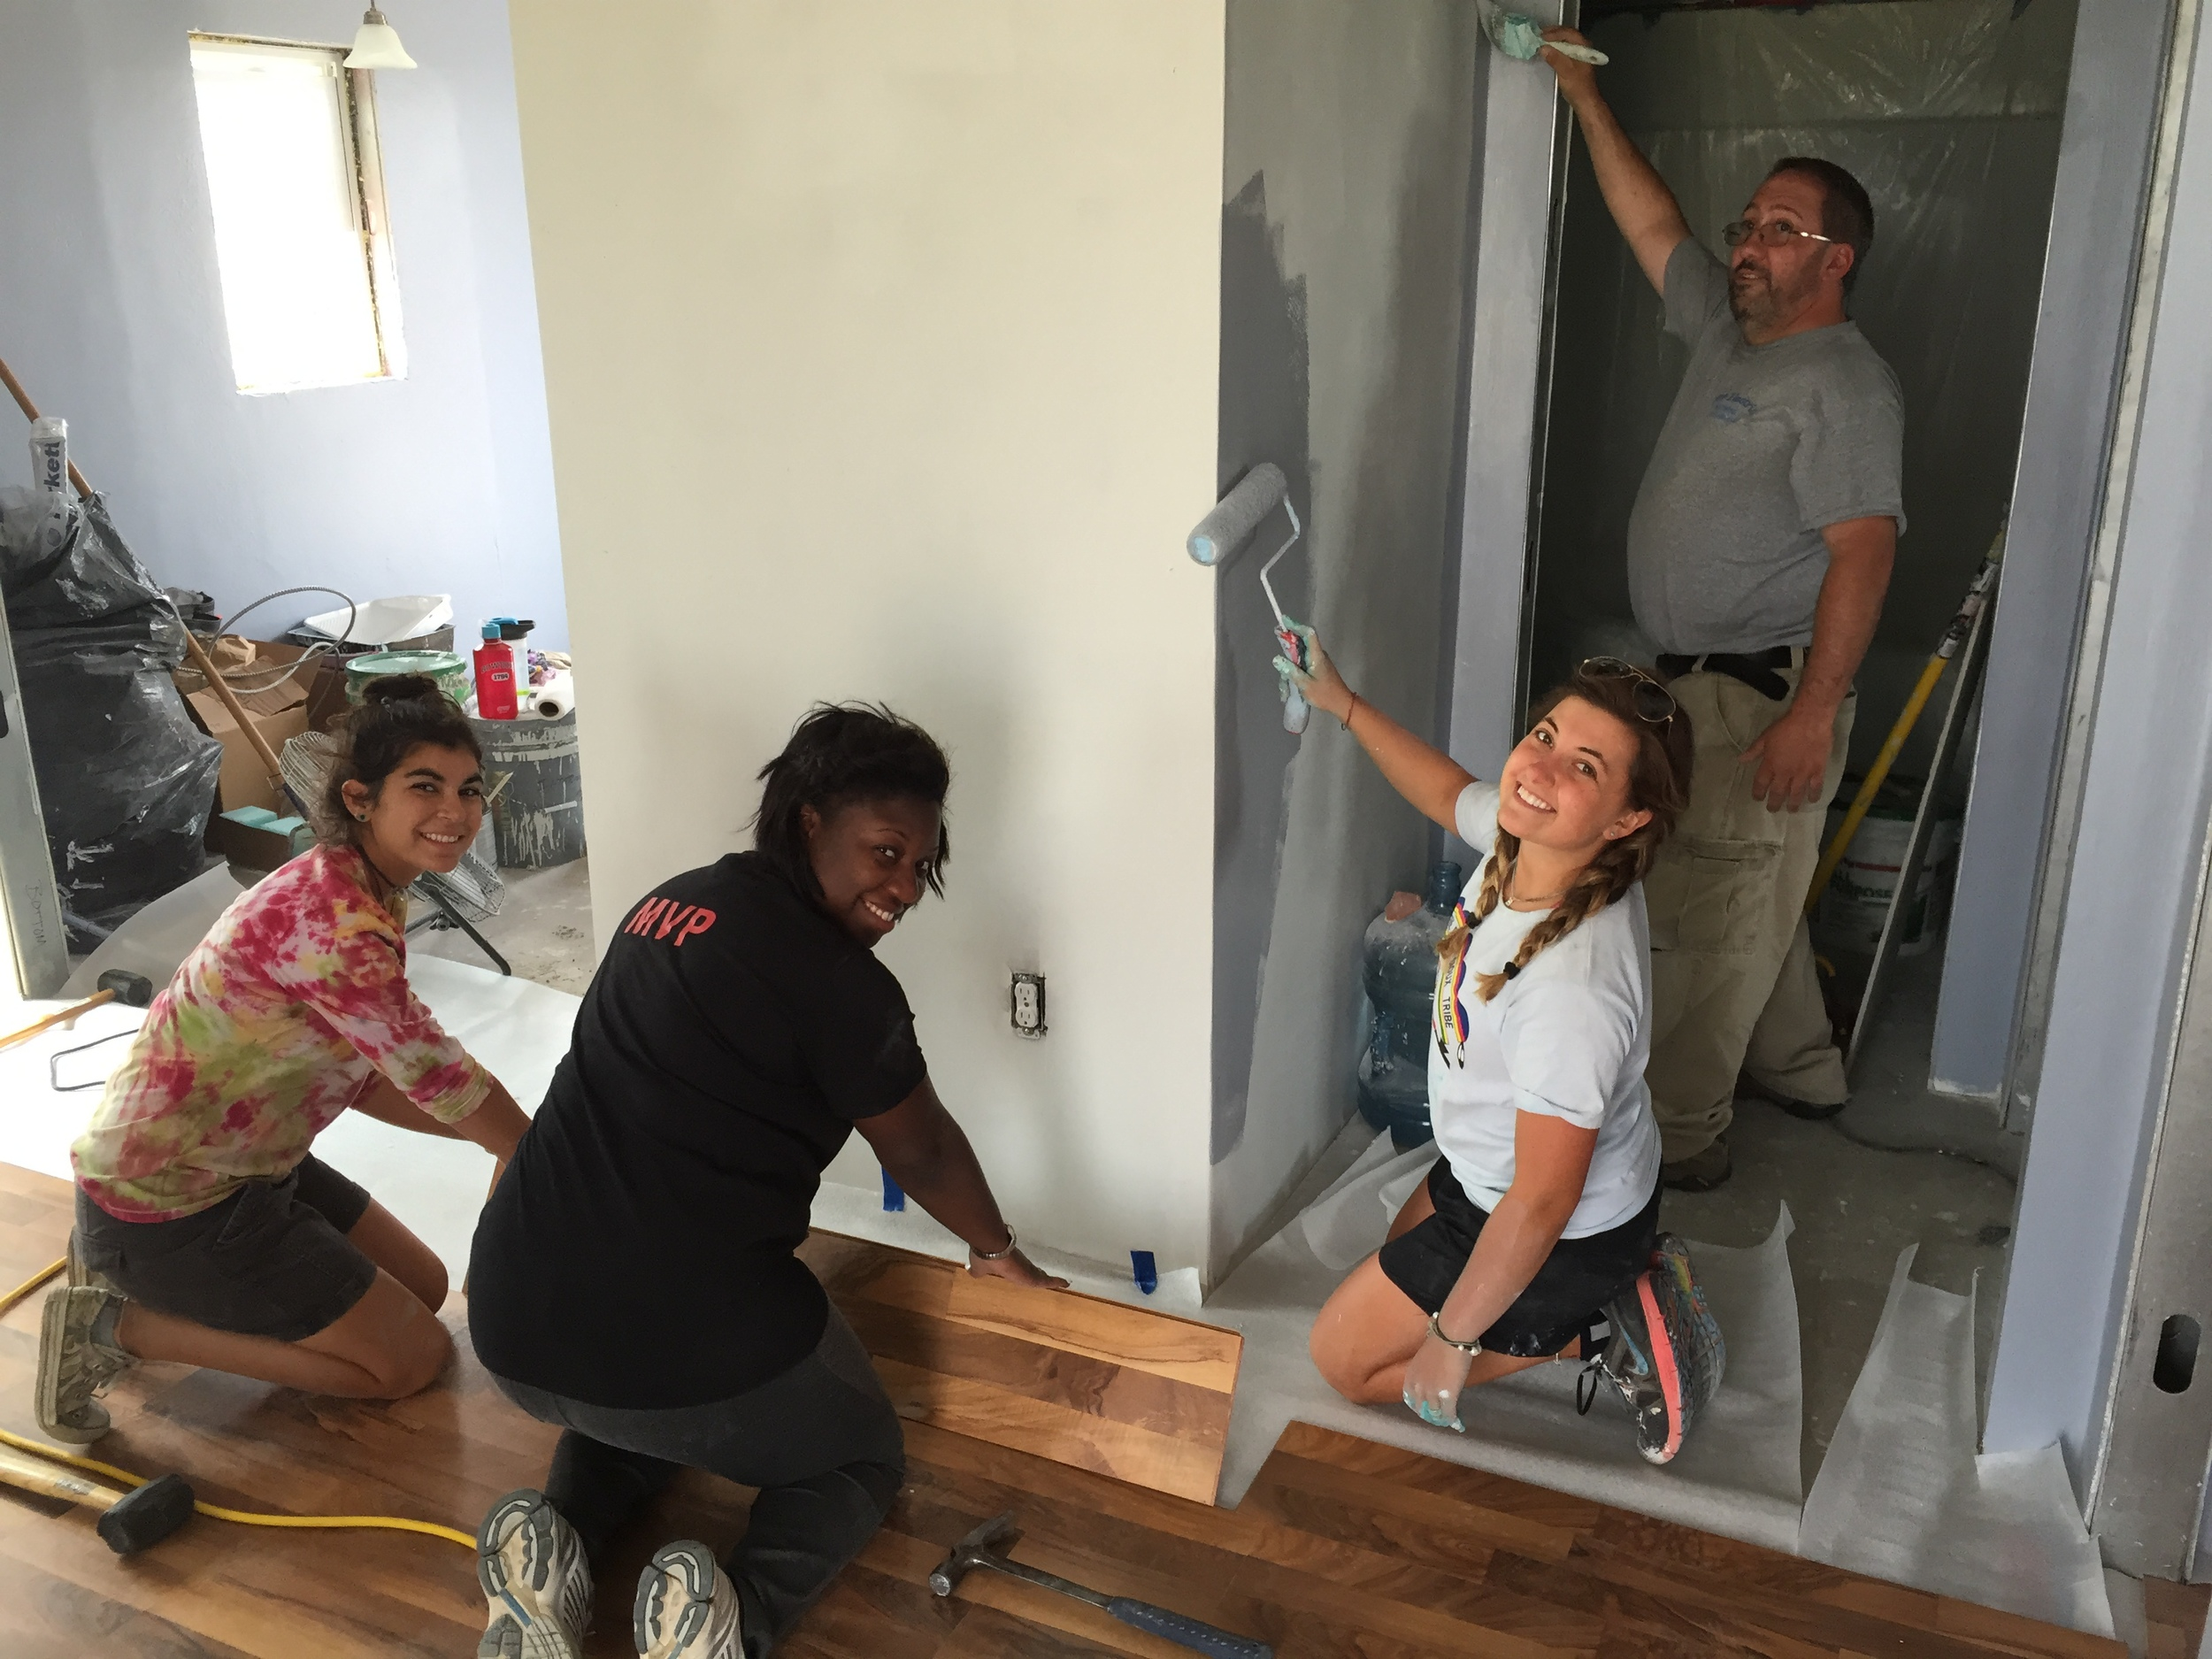 "Smiles abound among our interns and volunteers at the new house project, including Nakia Letang, associate director of admissions at Fairfield University, and Dom Mastroni, from Milford, CT! (Z. Gross, August 2015, La Plant"")"